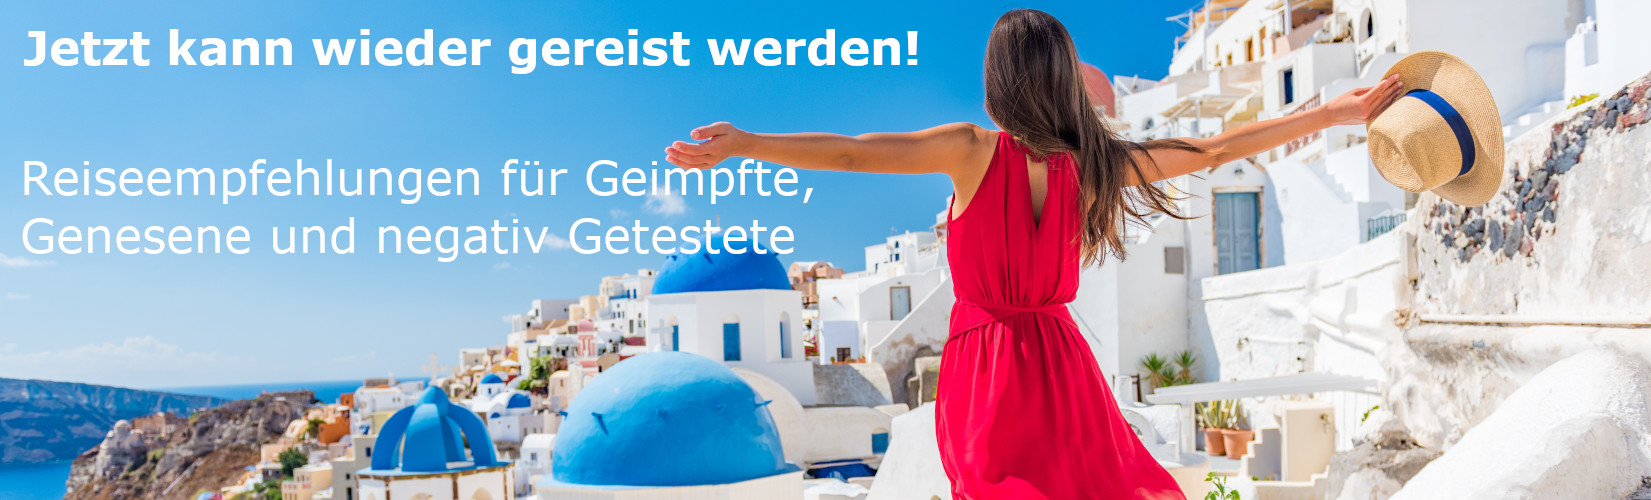 Europe,Travel,Vacation,Fun,Summer,Woman,Dancing,In,Freedom,With